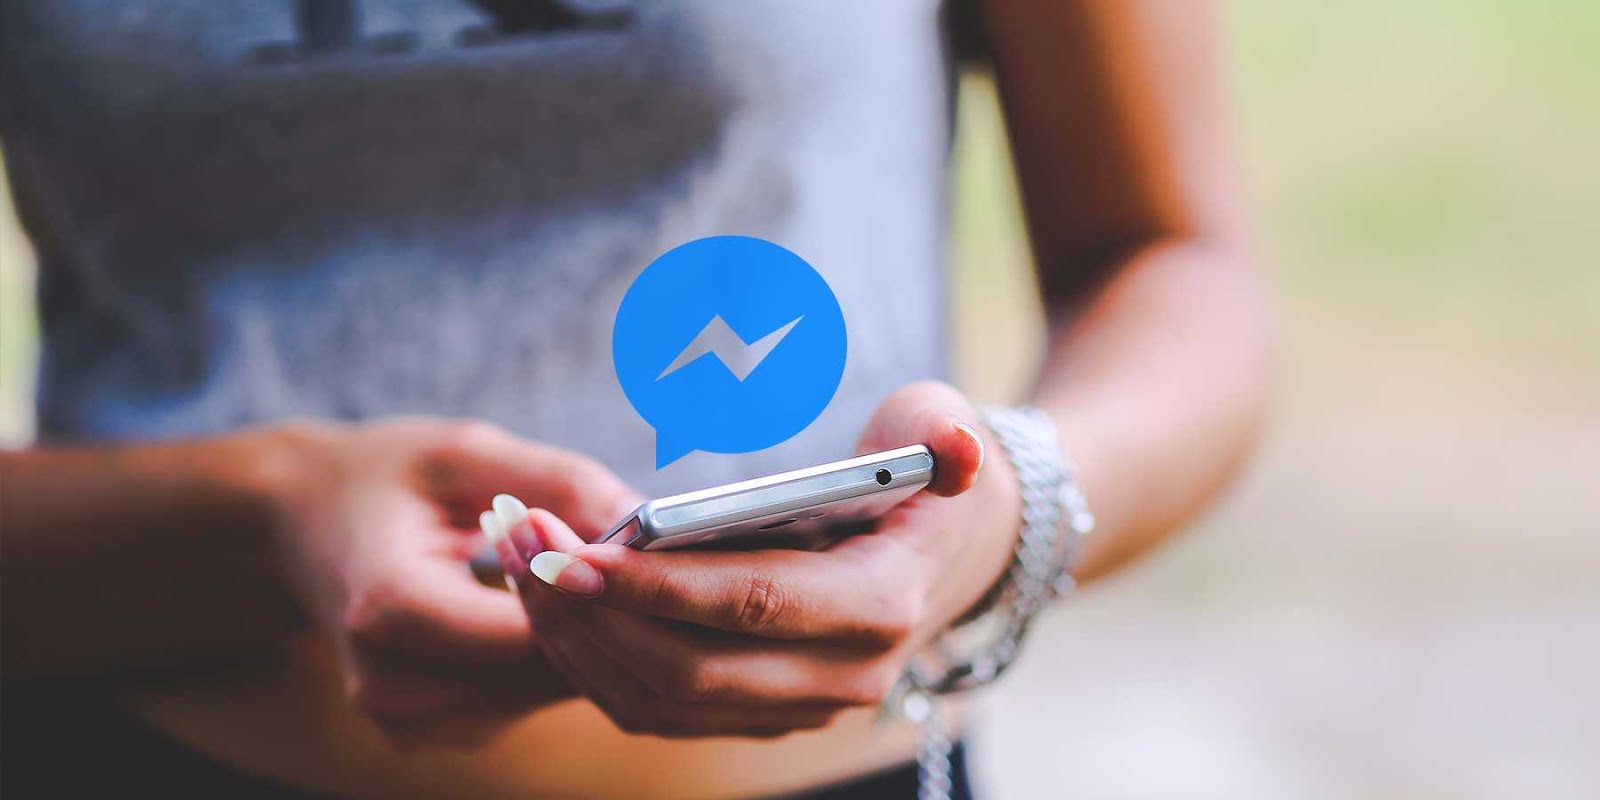 5 Things You Can Do With Facebook Messenger